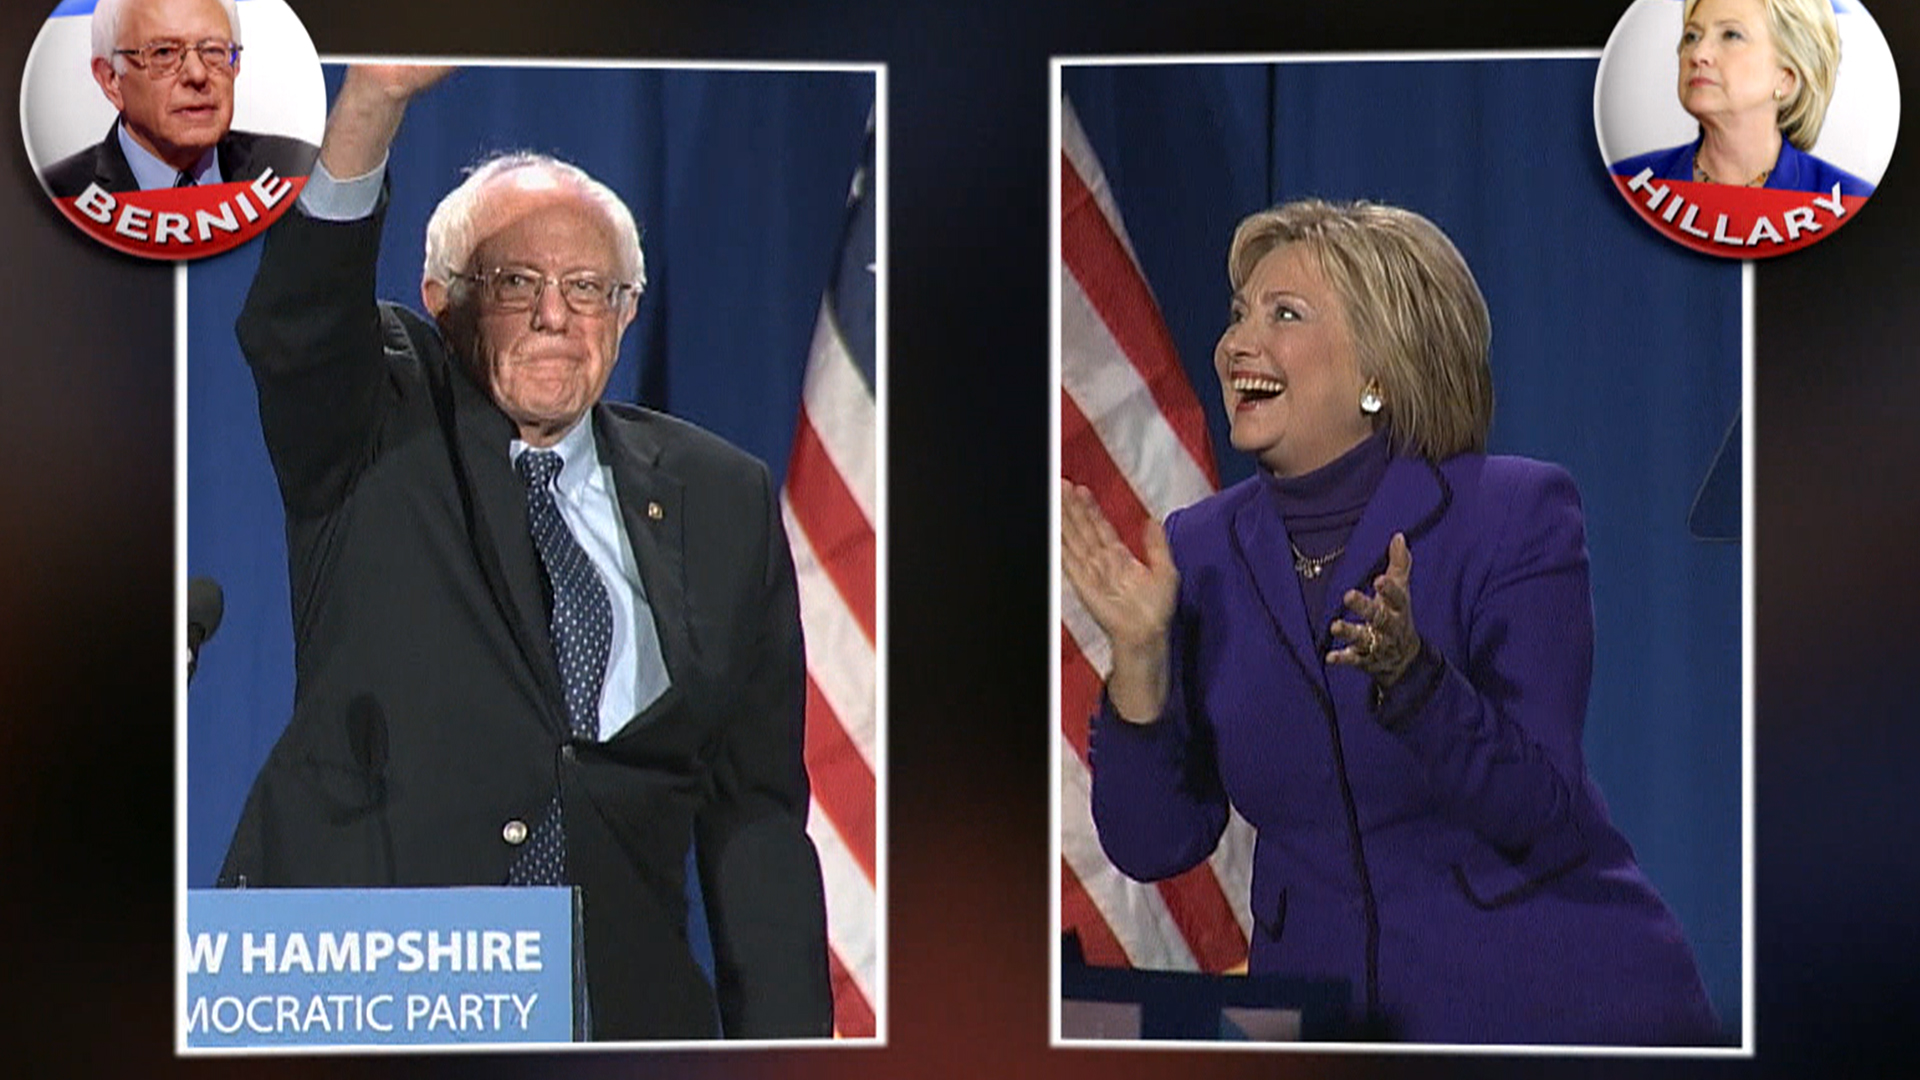 How close will the Democrats be in New Hampshire?